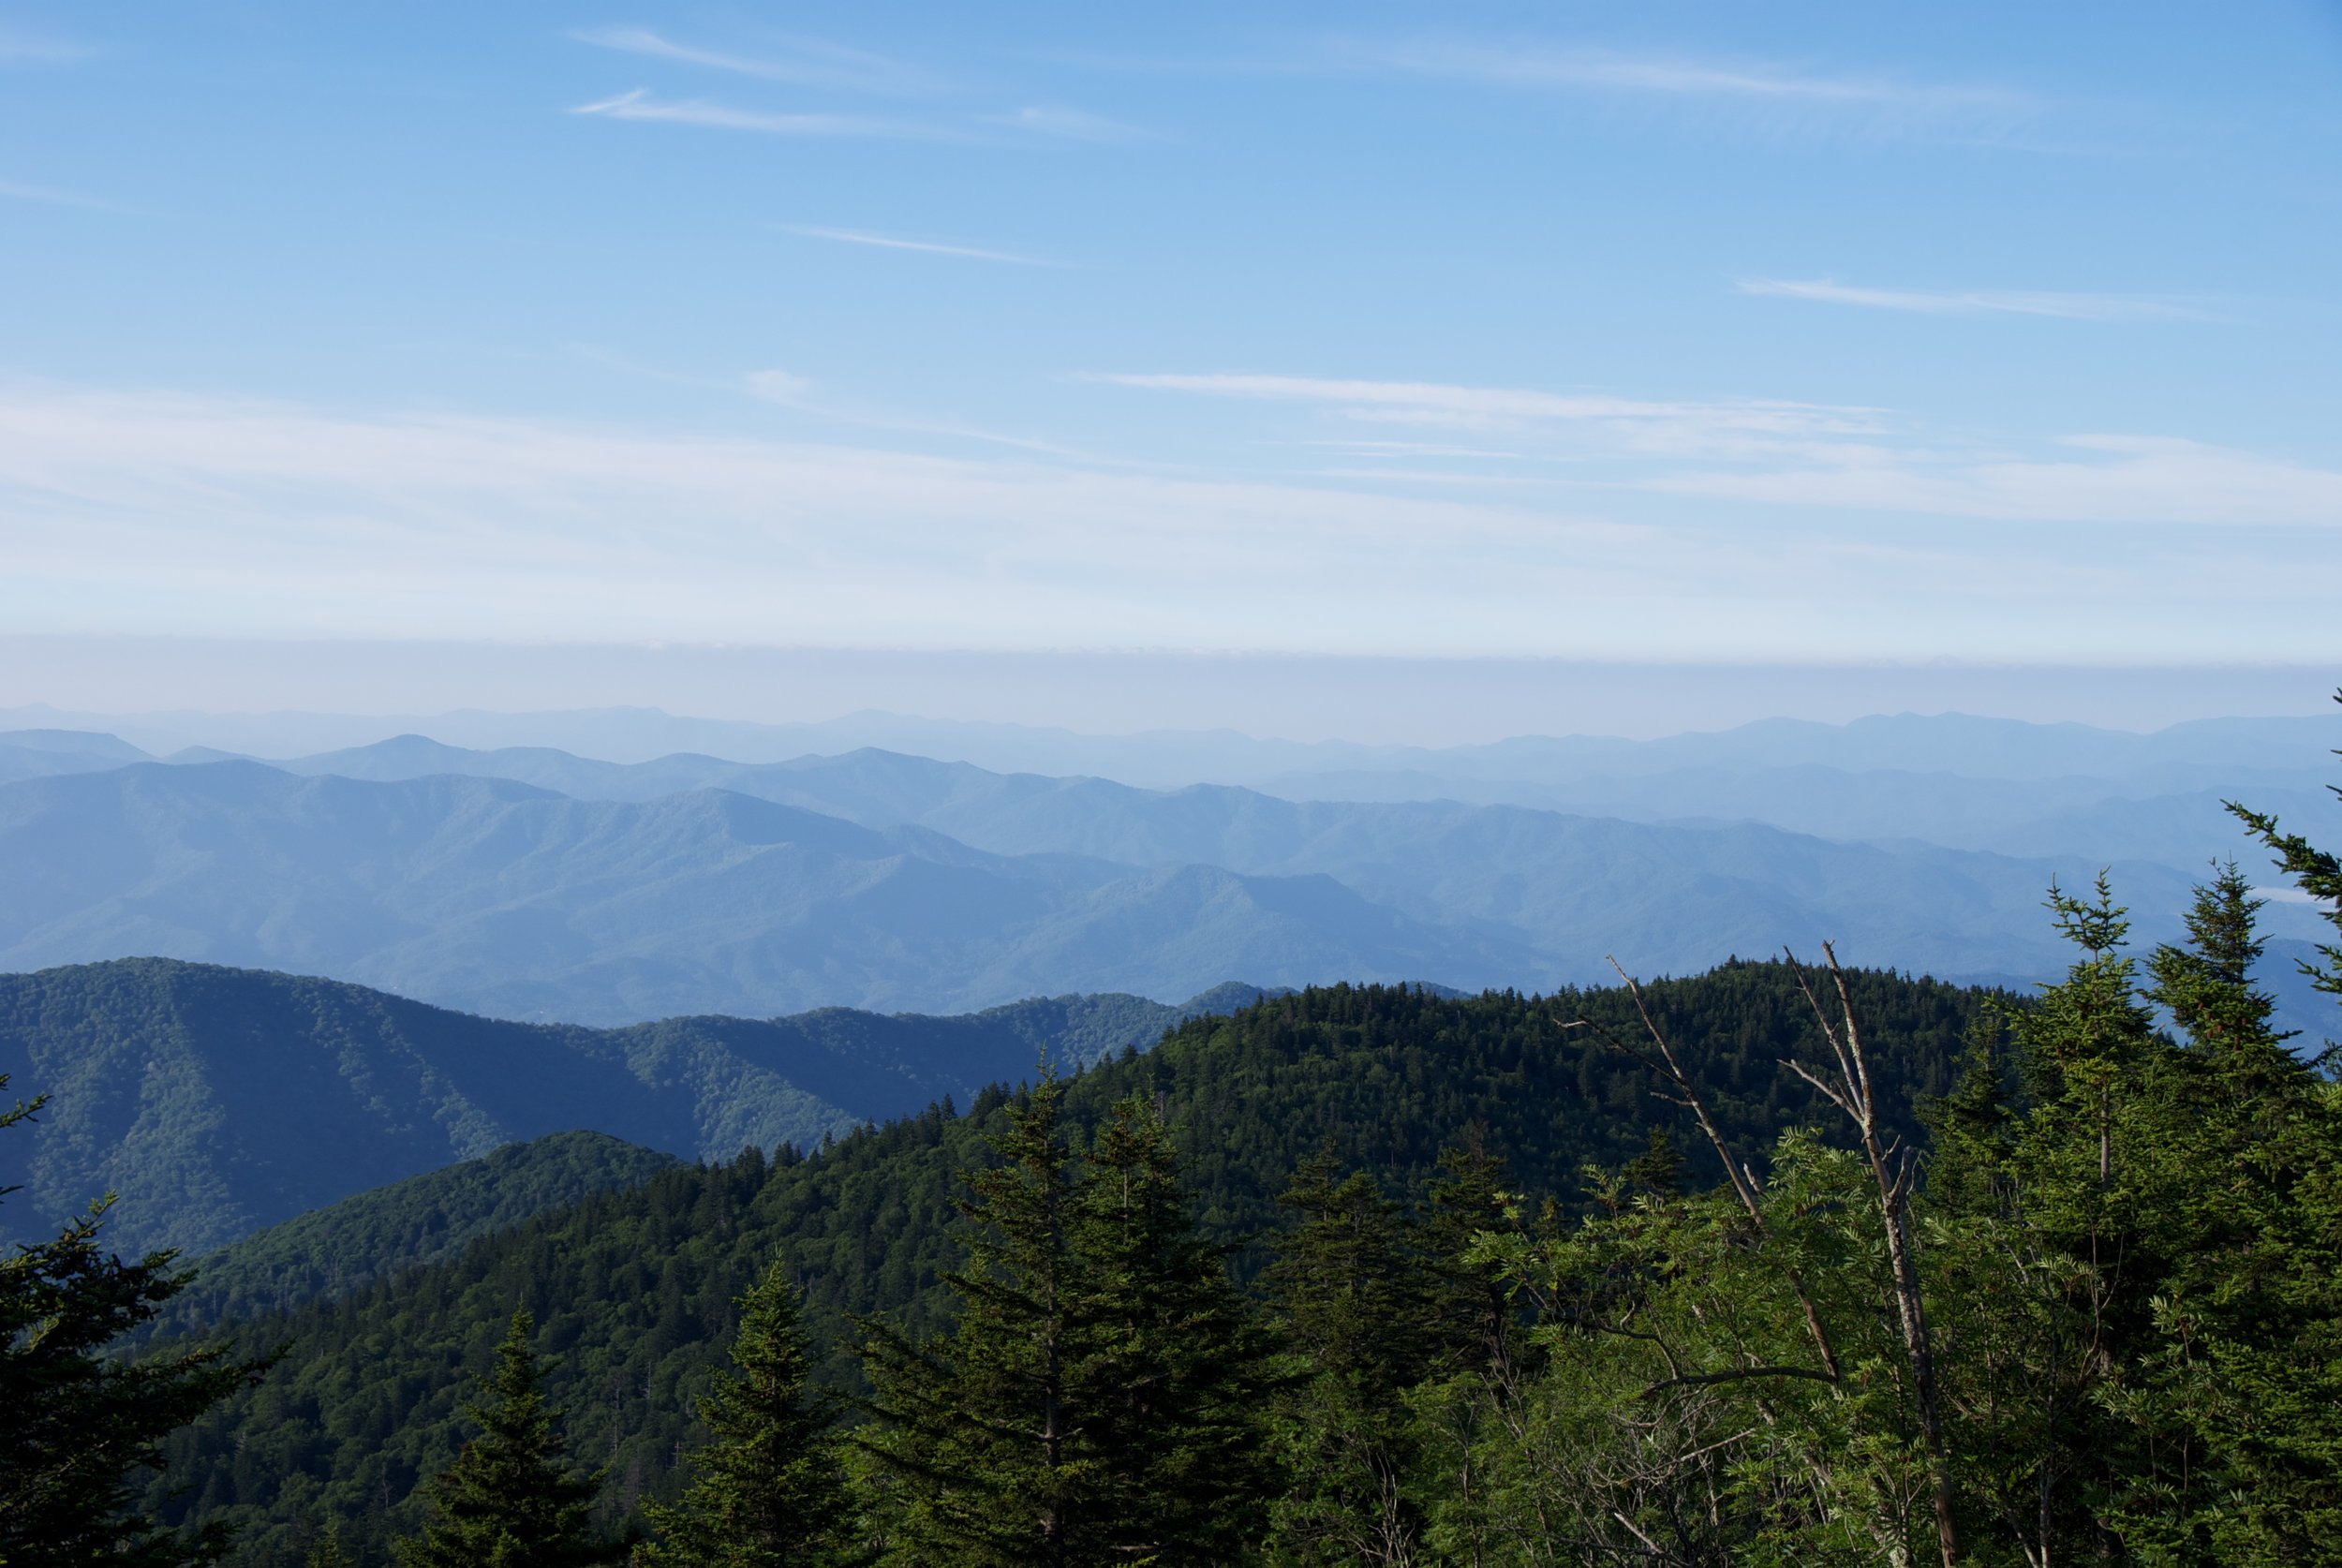 A beautiful July Morning in the Smokies